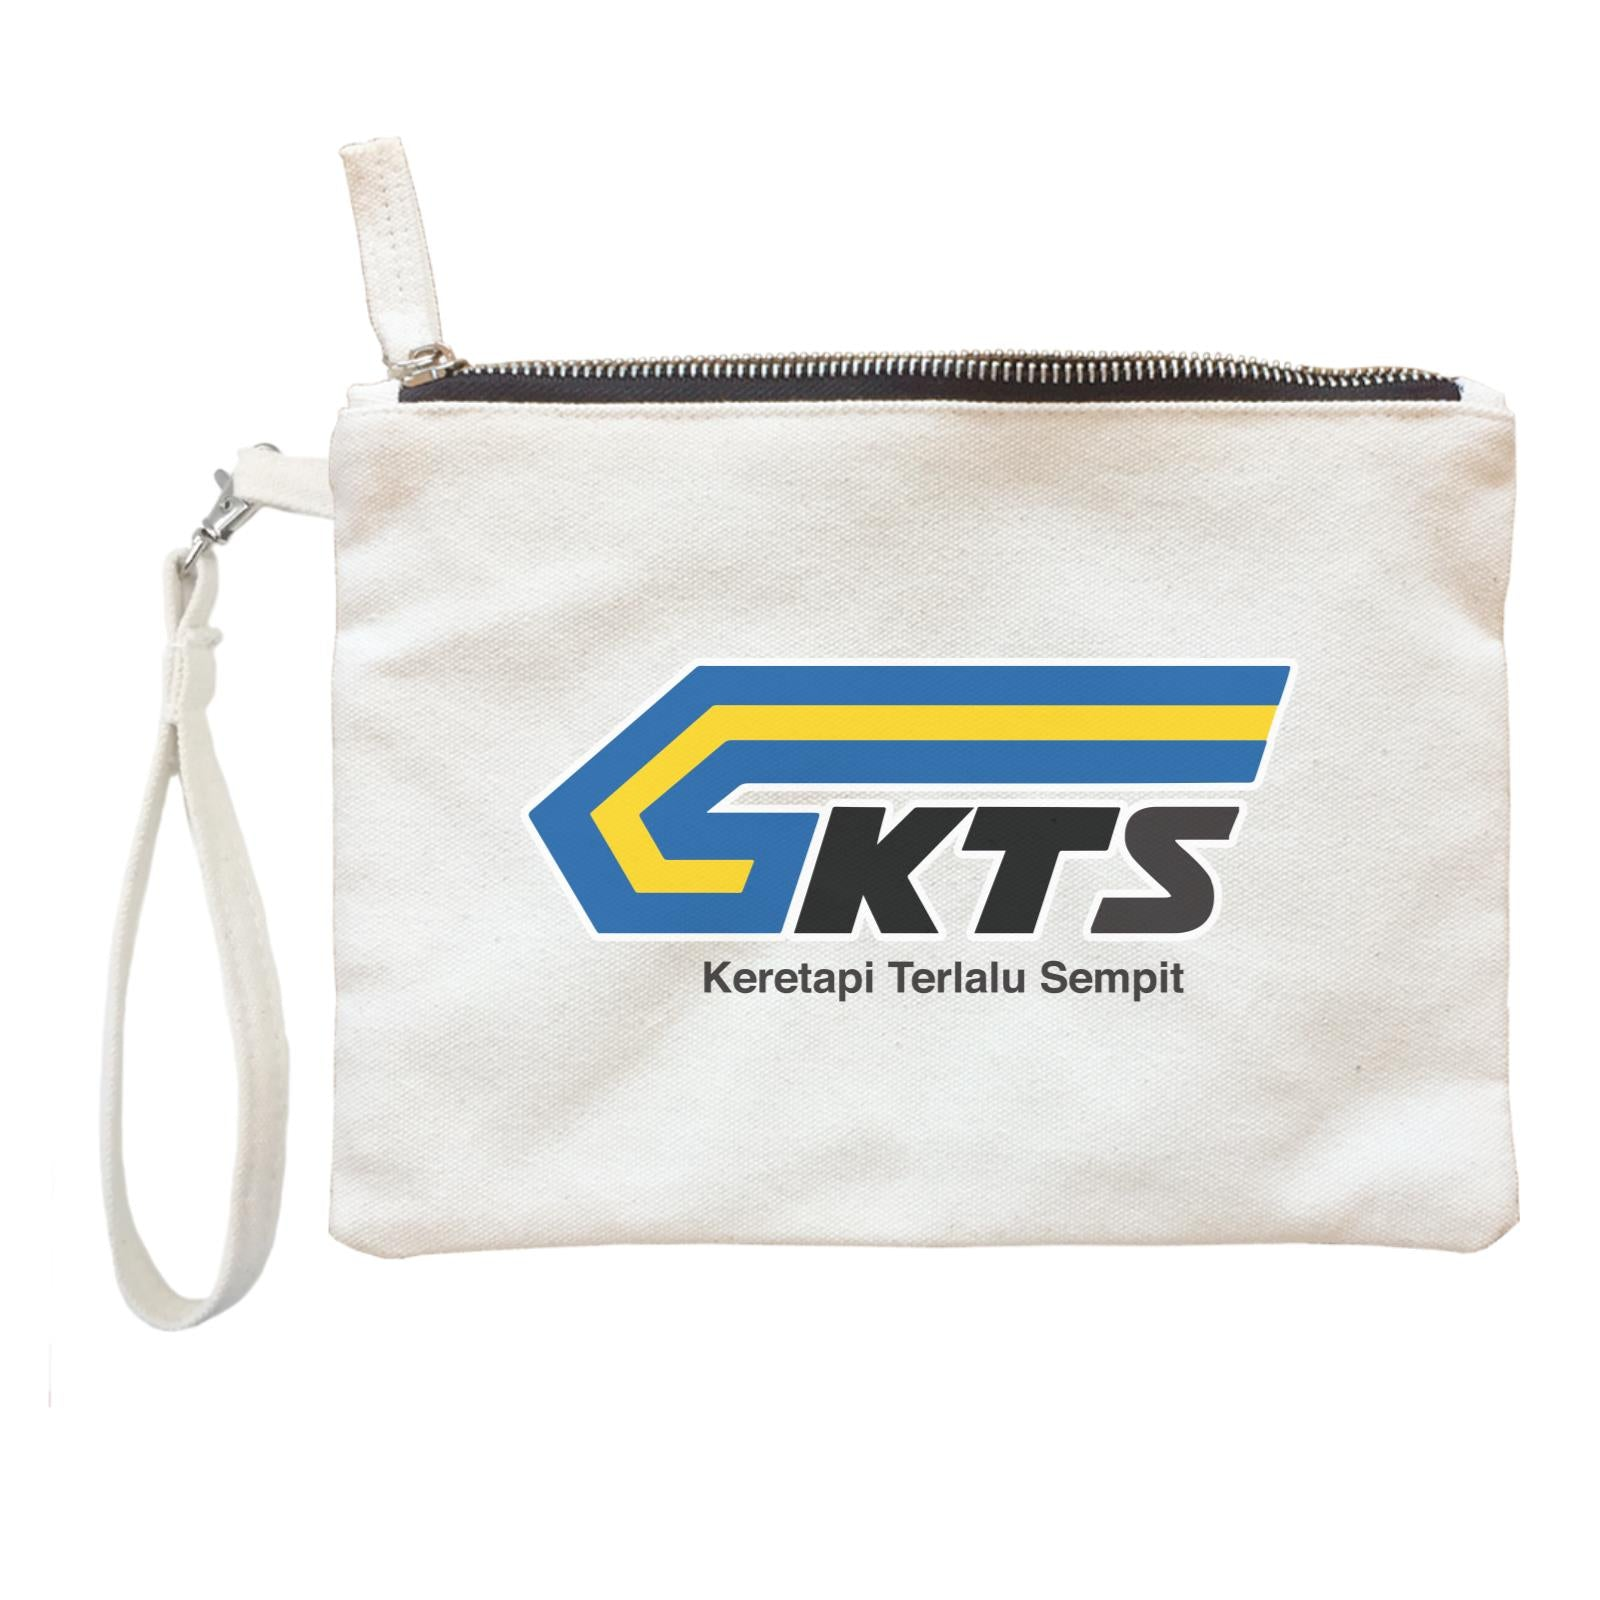 Slang Statement KTS Accessories Zipper Pouch with Handle